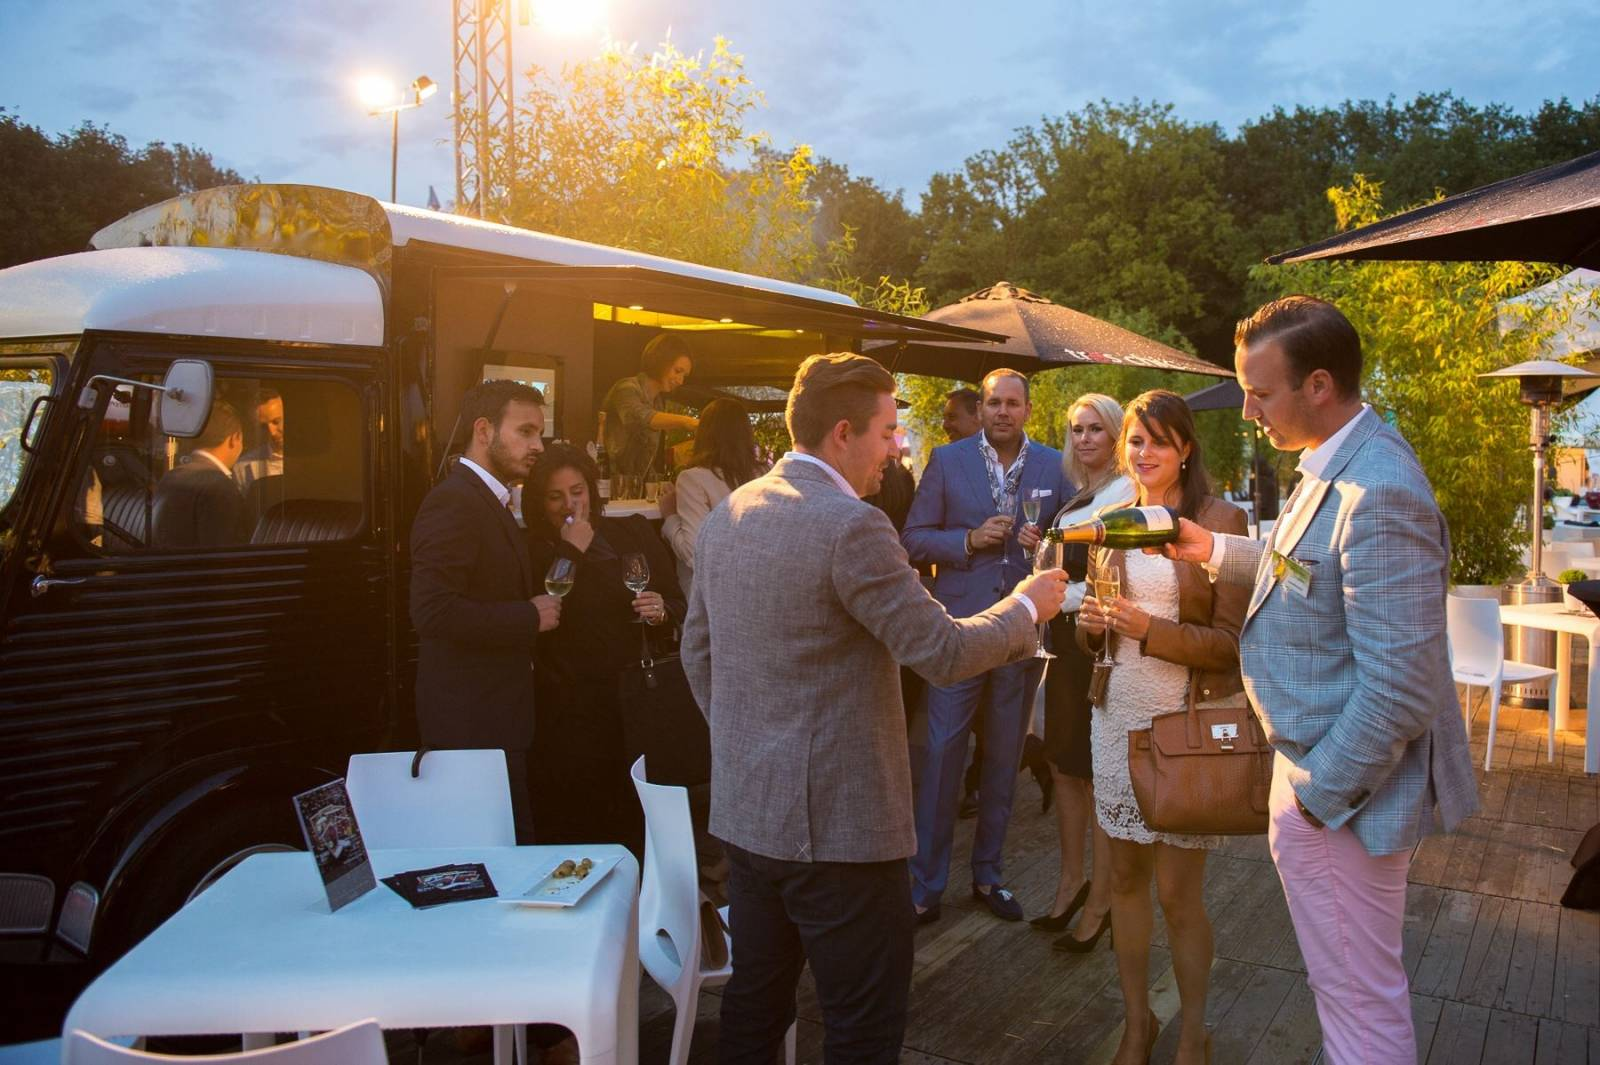 House of Weddings Bubblebus Bubbelbus foodtruck drinks truck Jurgen Somers Receptie Cava Champagne Cocktails Hapjes (3)